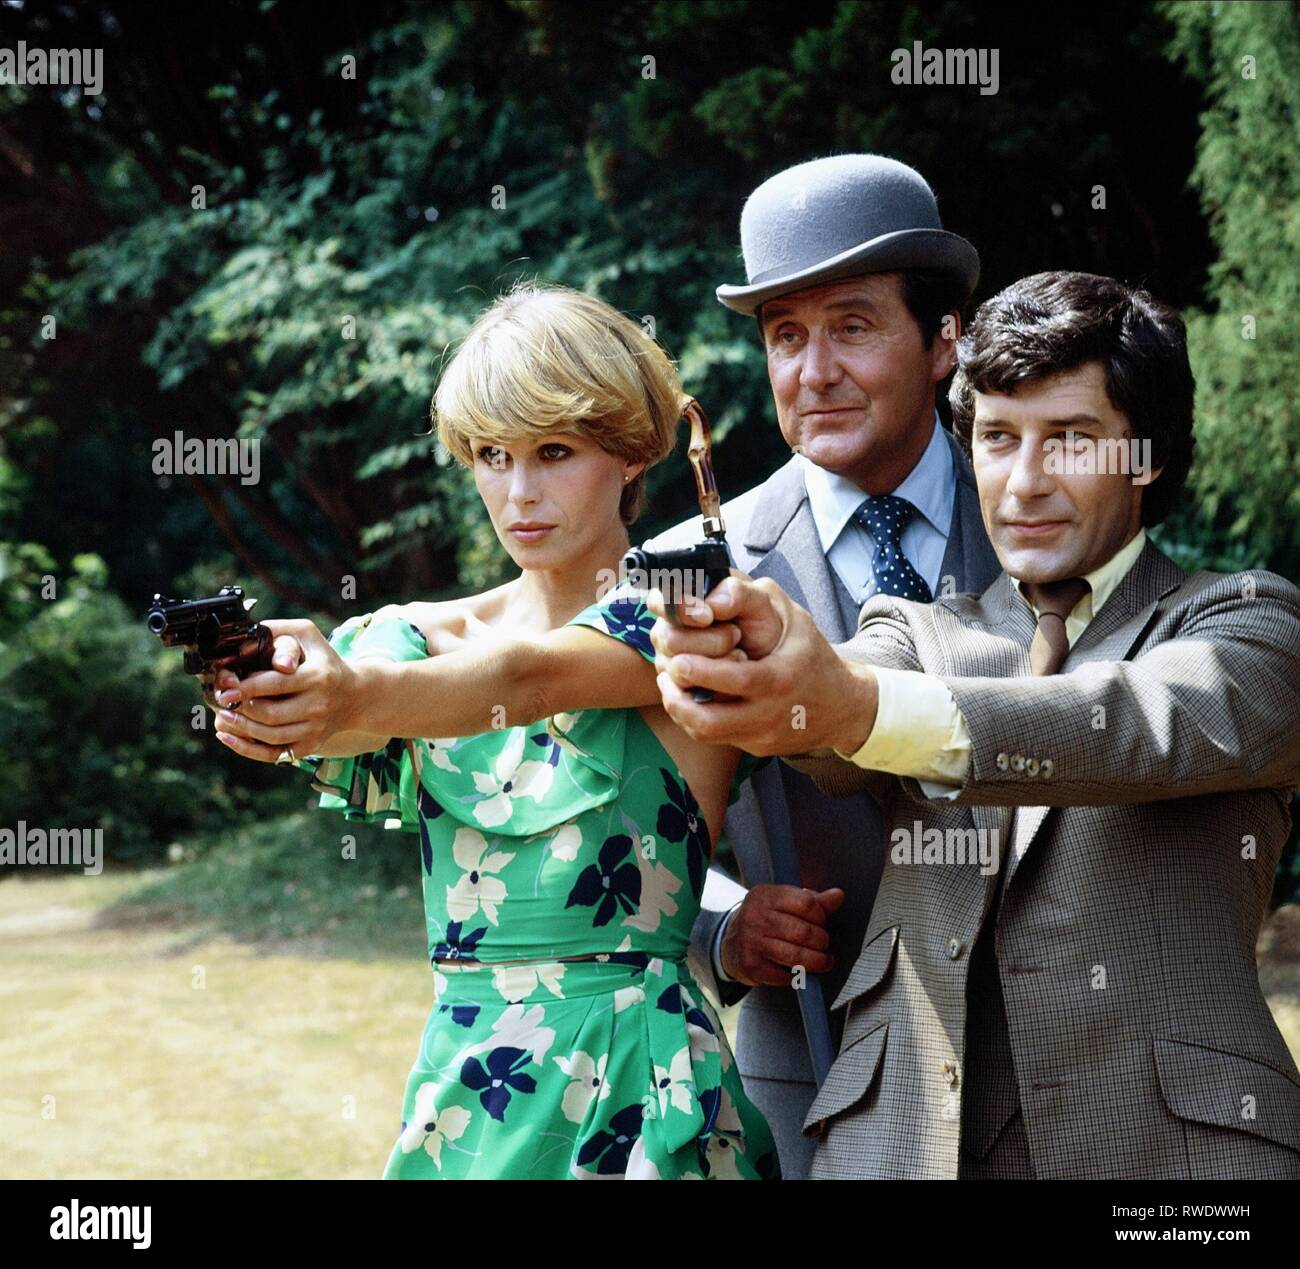 LUMLEY,MACNEE,HUNT, THE NEW AVENGERS, 1976 - Stock Image